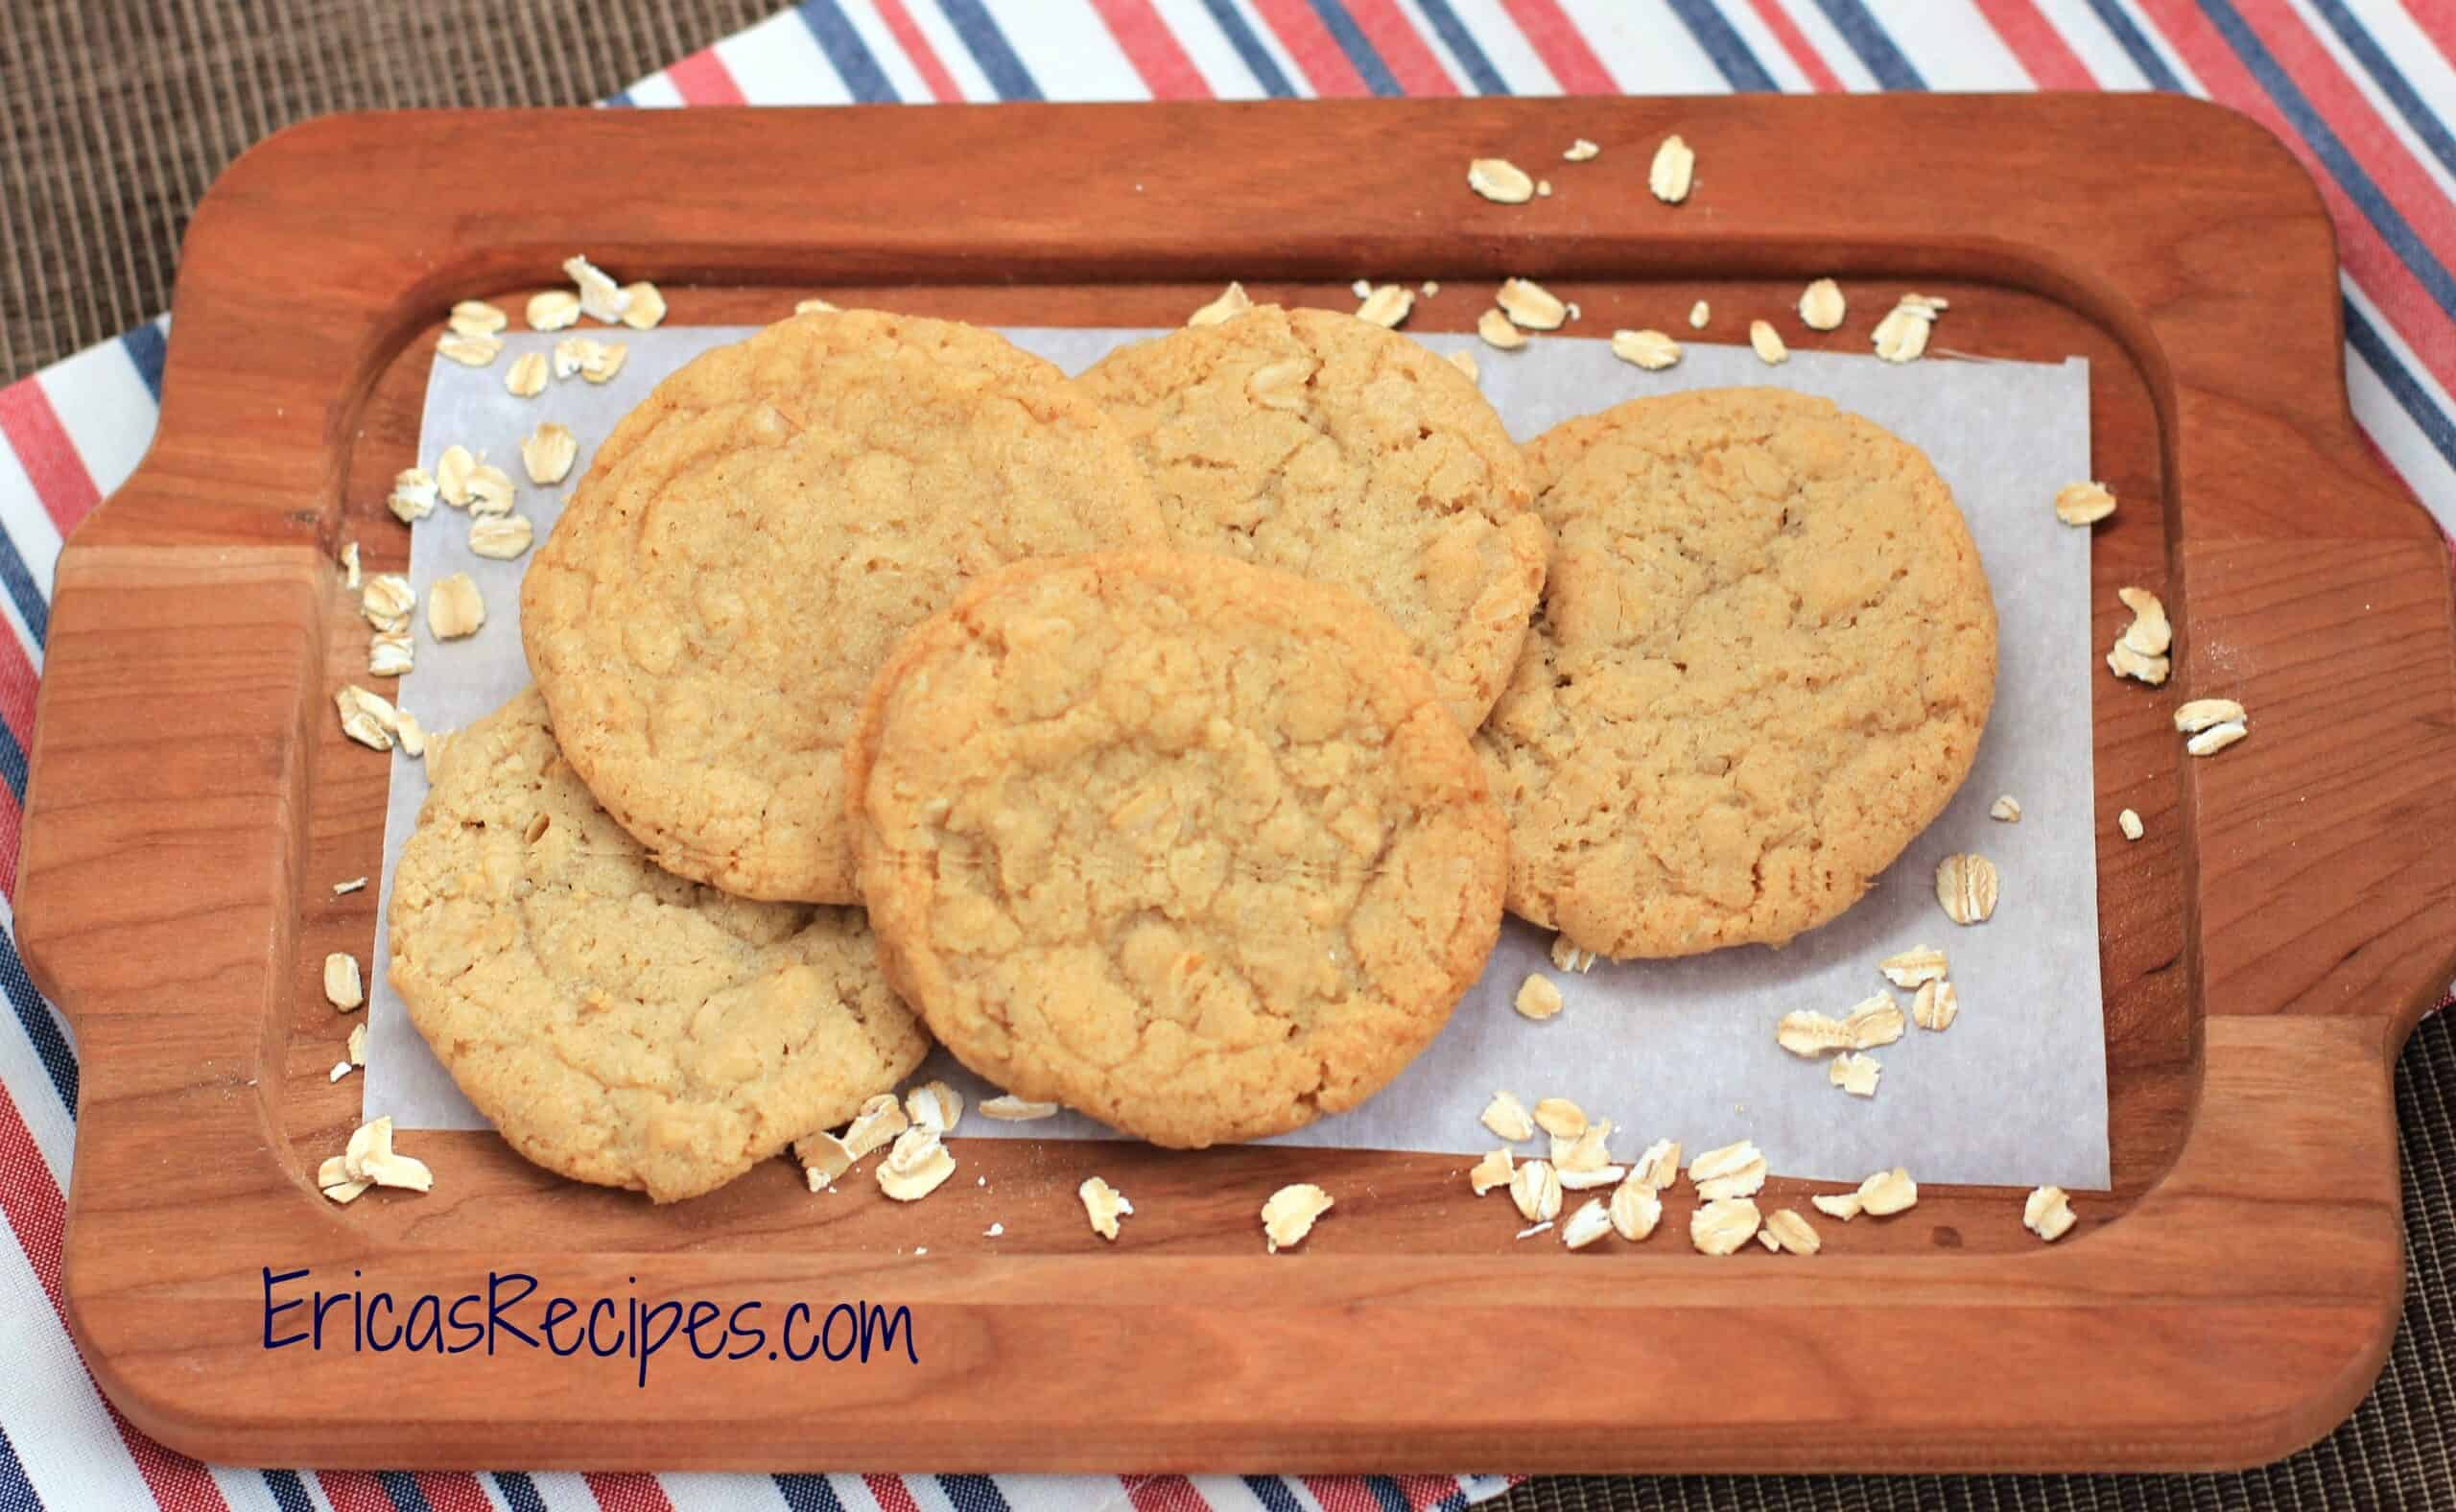 Grammy Peggy's Oatmeal Cookies